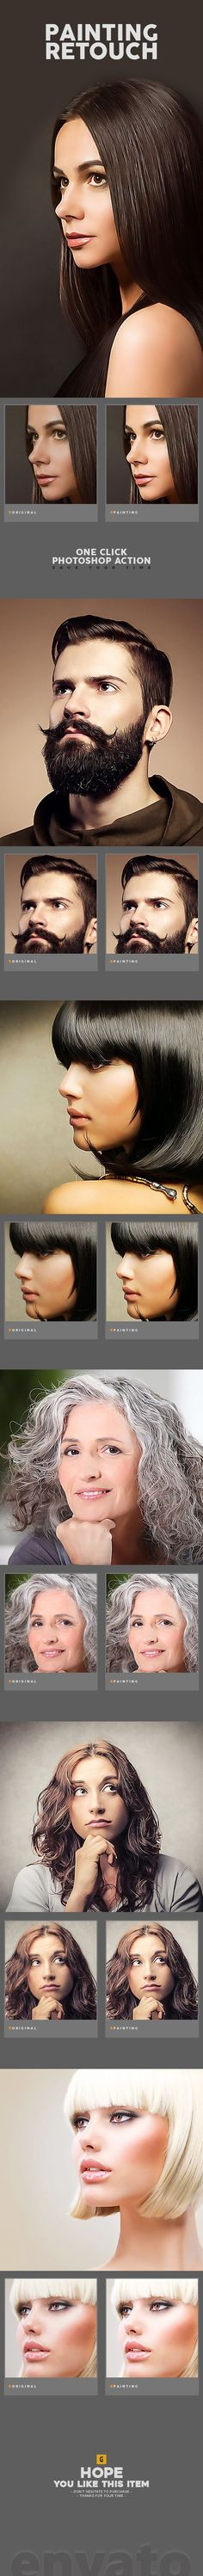 Painting Retouch #Photoshop Action - #Photo Effects #Actions Download here: https://graphicriver.net/item/painting-retouch-photoshop-action/19610948?ref=alena994